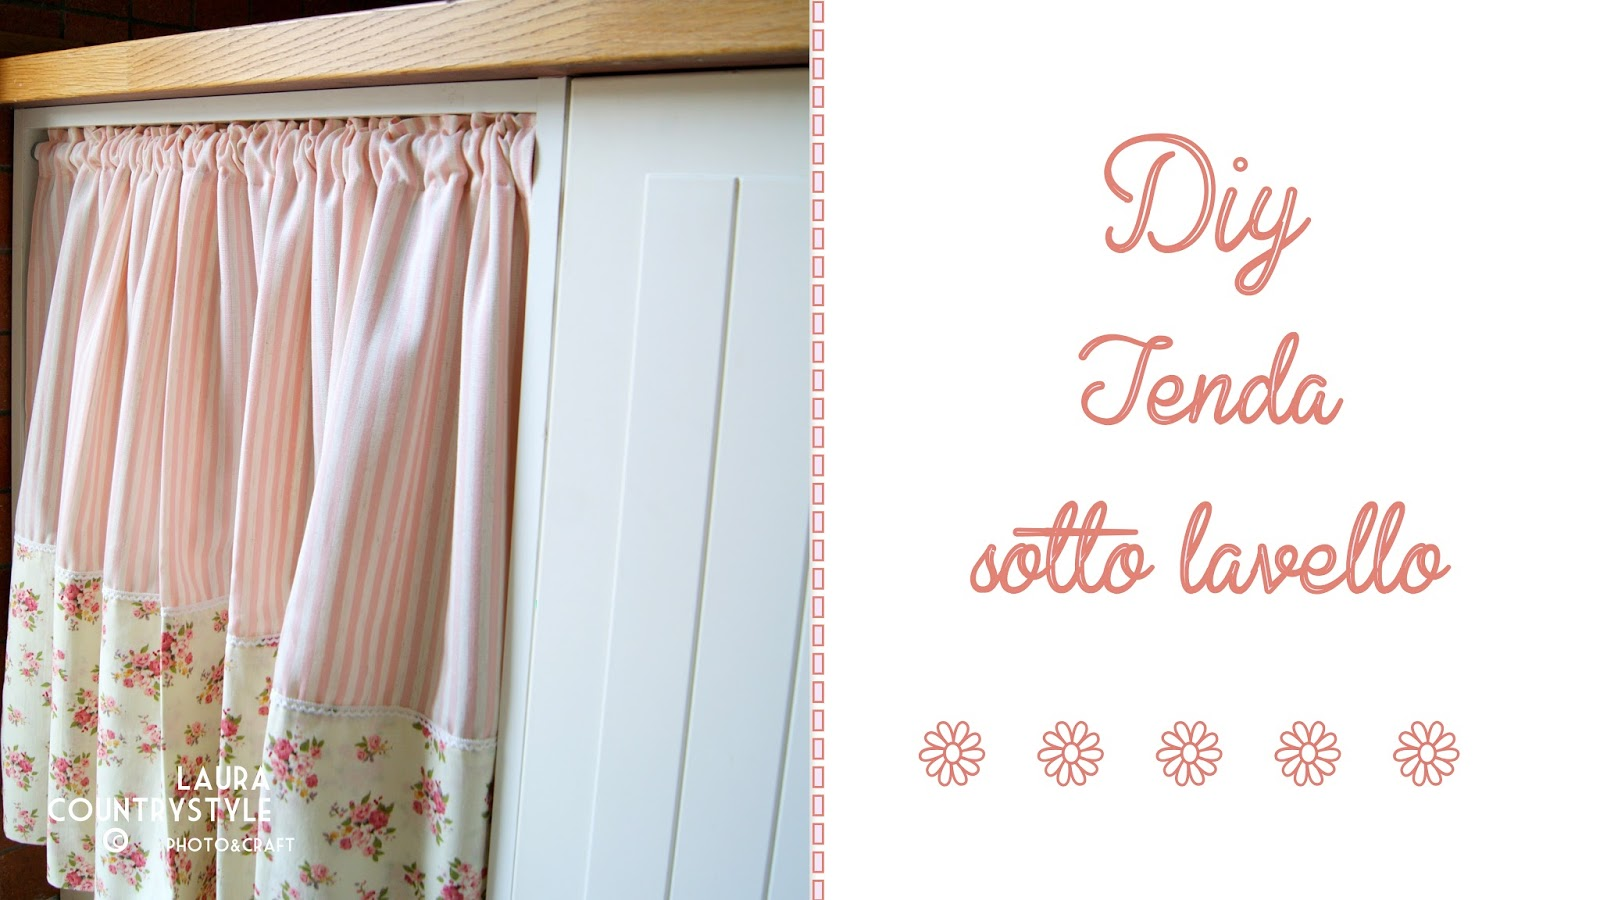 Laura country style: Diy : tenda sotto lavello